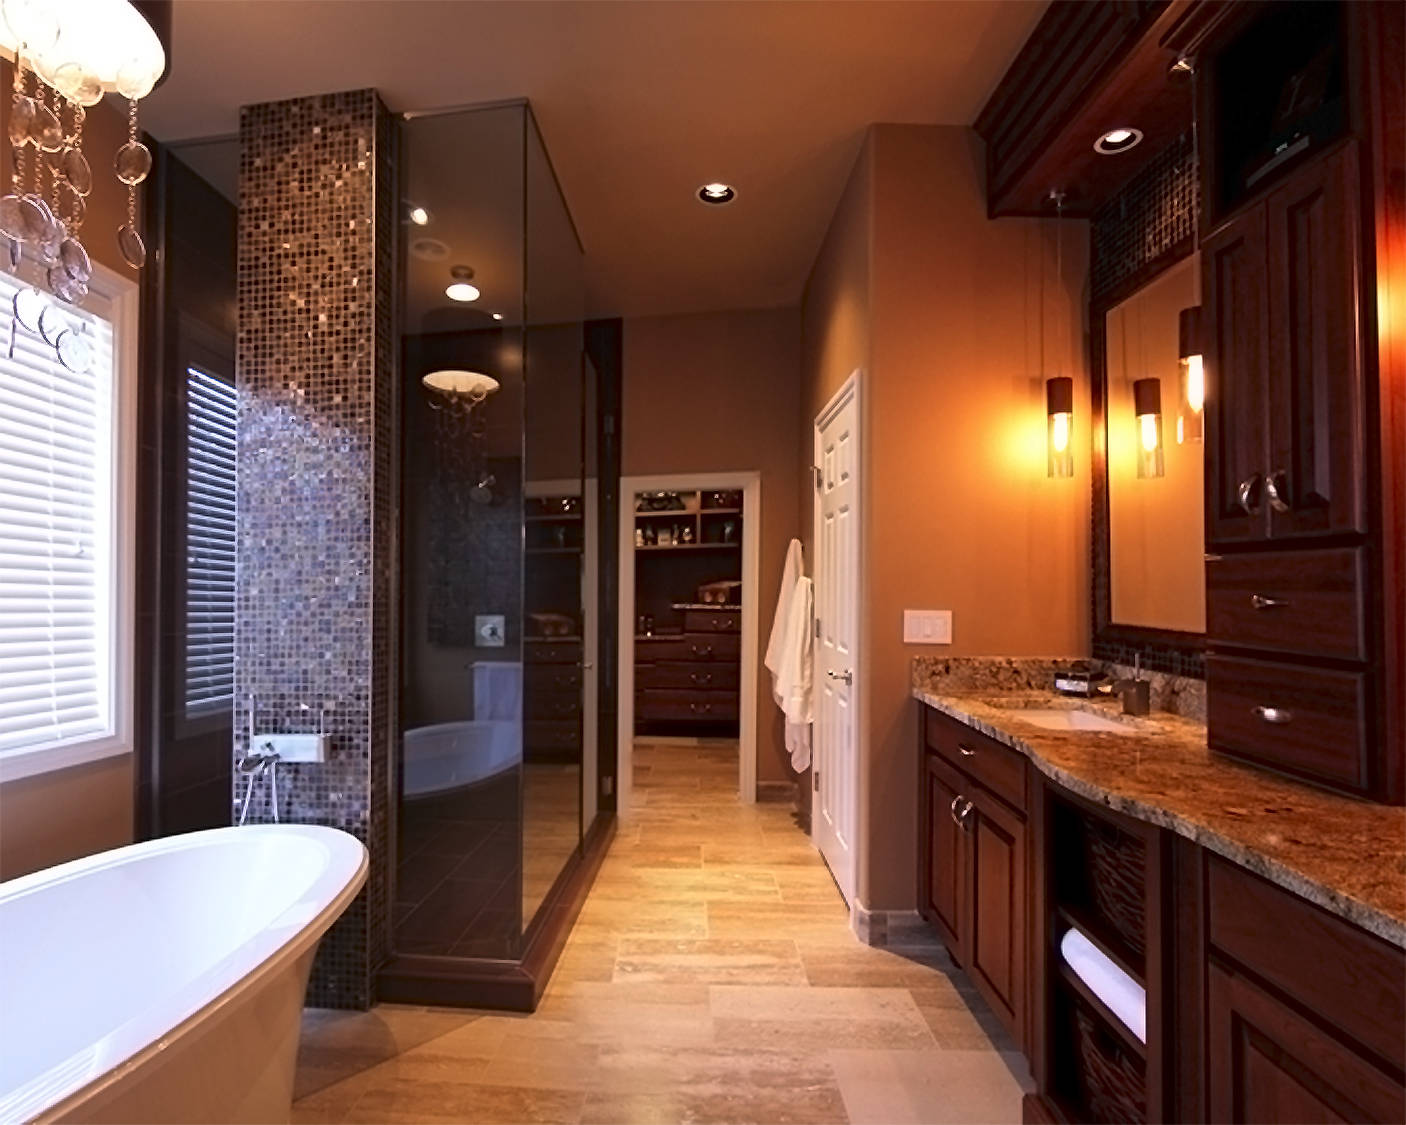 Luxurious Golden Bathroom Idea With Large Wooden Vanity Design Pendants And White Tub Beneath